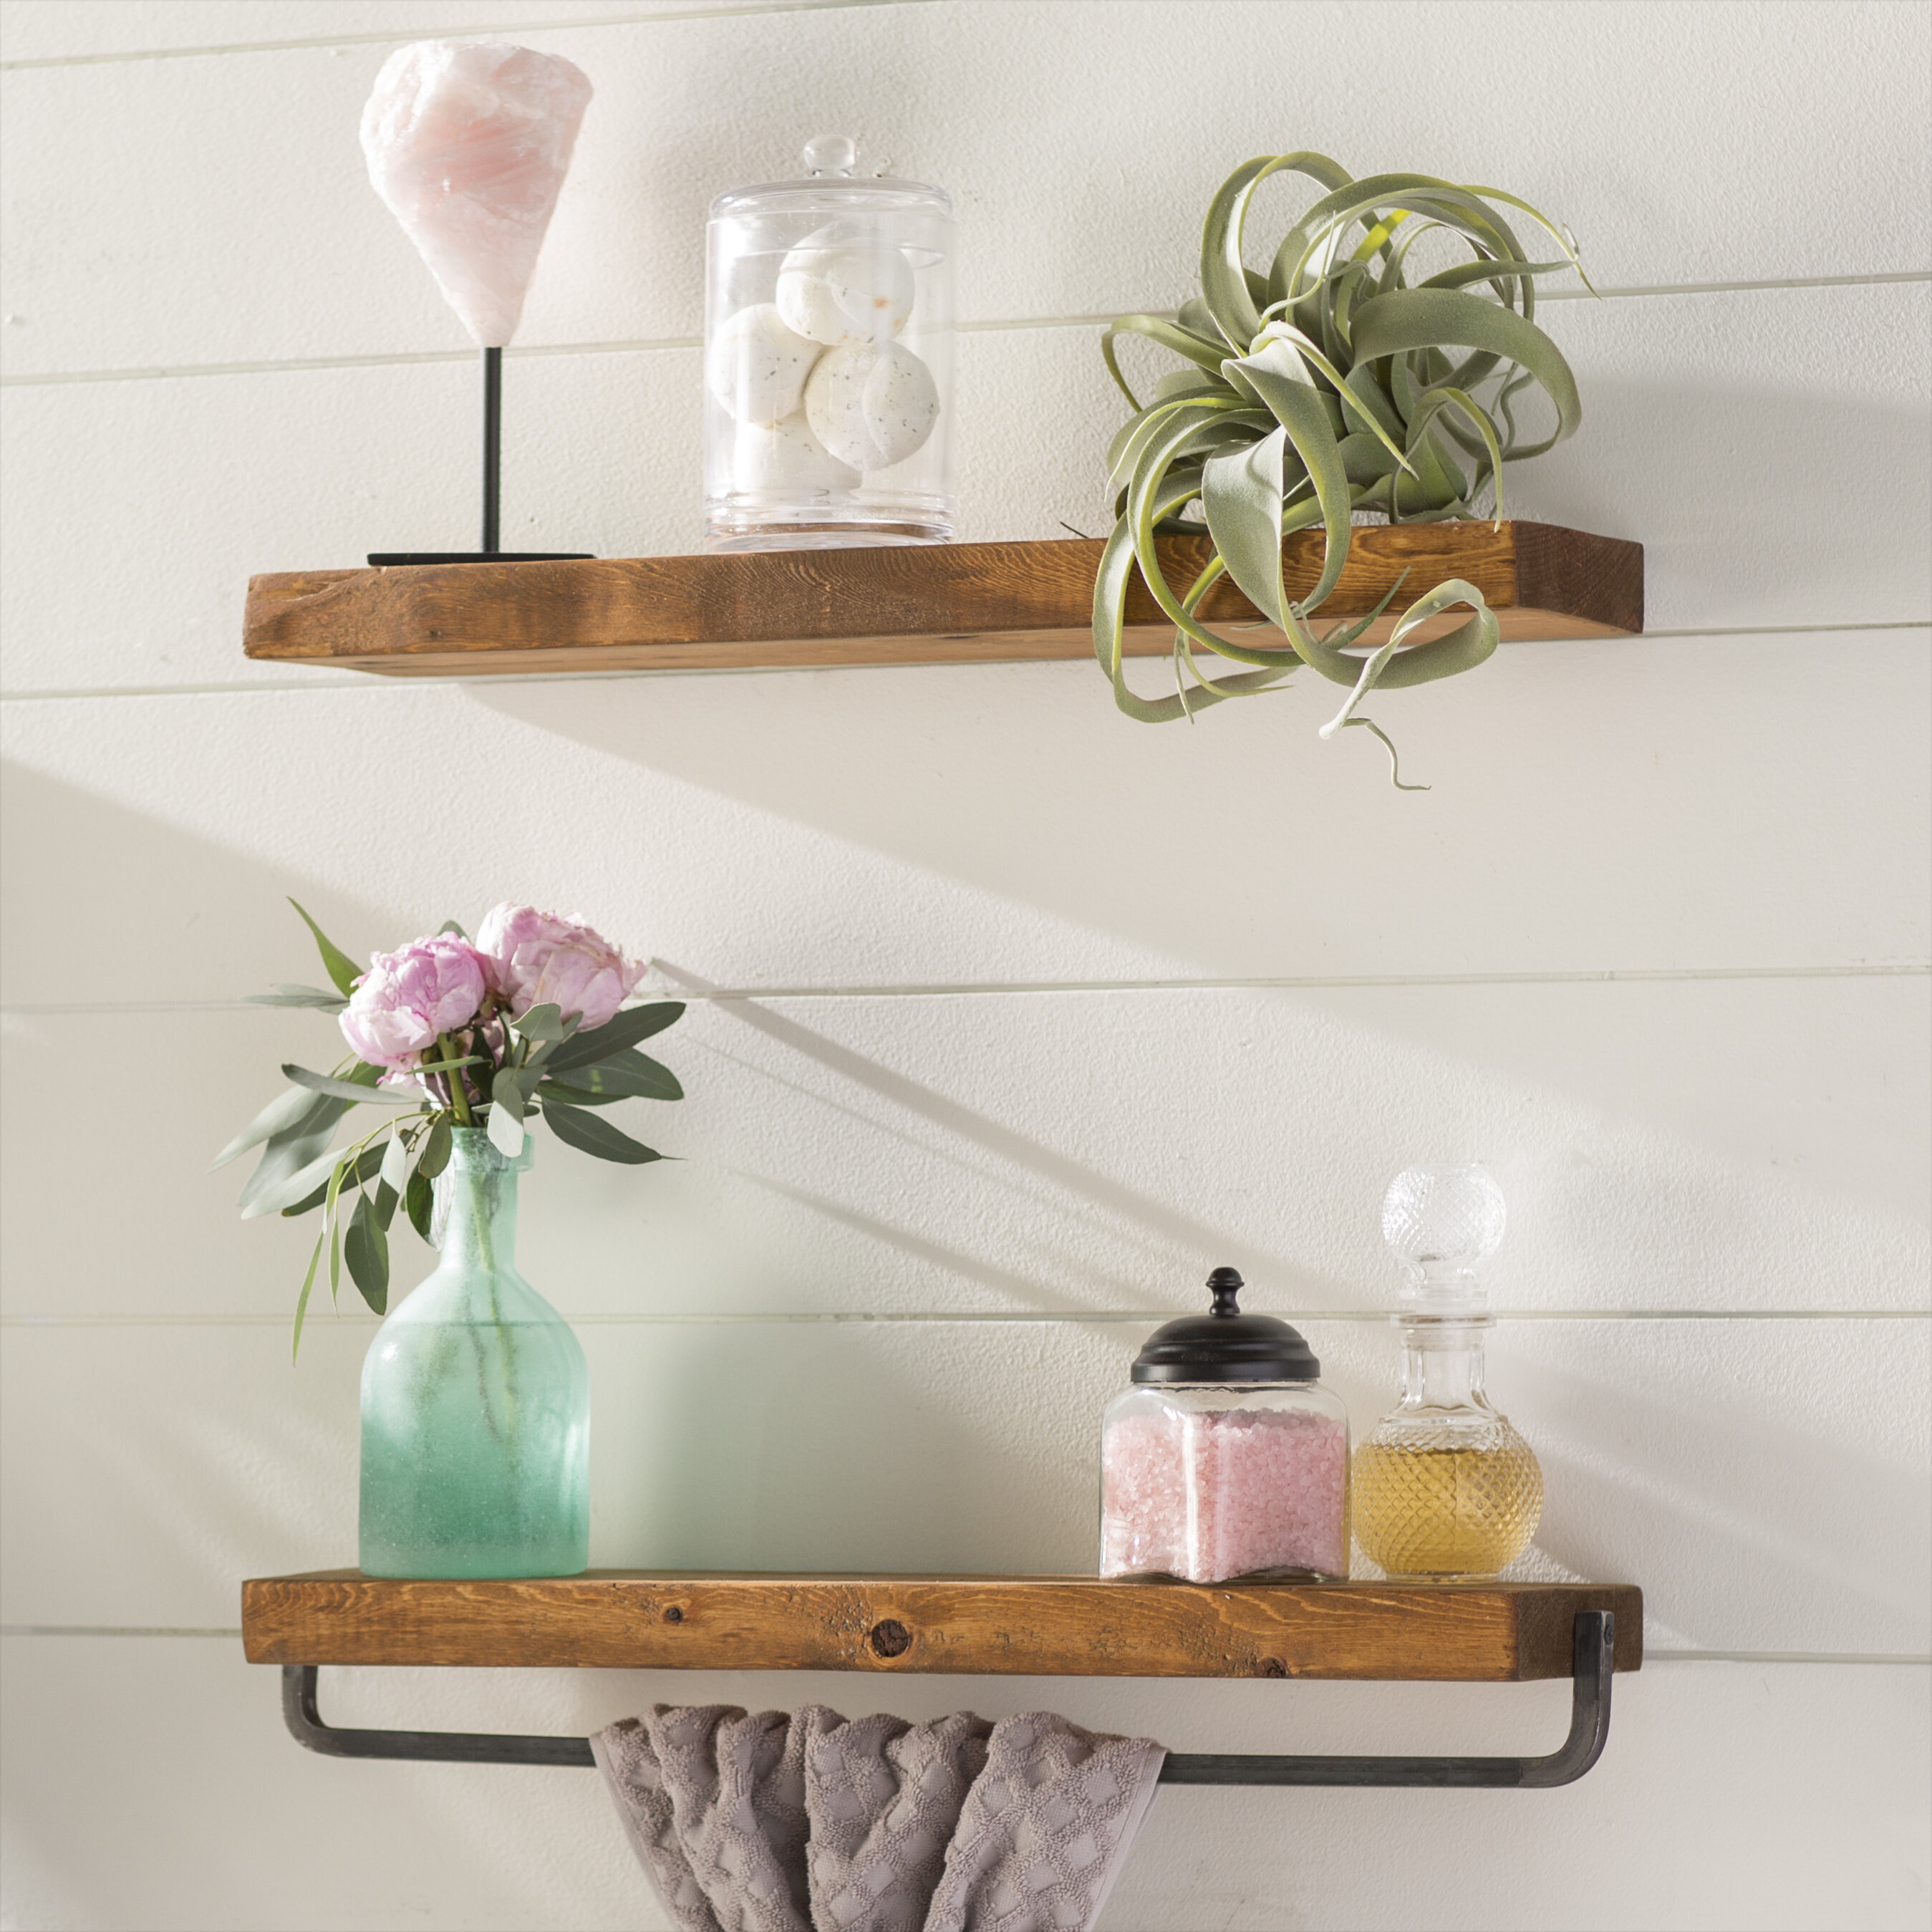 Drew 2 Piece Wall Shelf Set Pertaining To Farm Metal Wall Rack And 3 Tin Pot With Hanger Wall Decor (View 12 of 30)